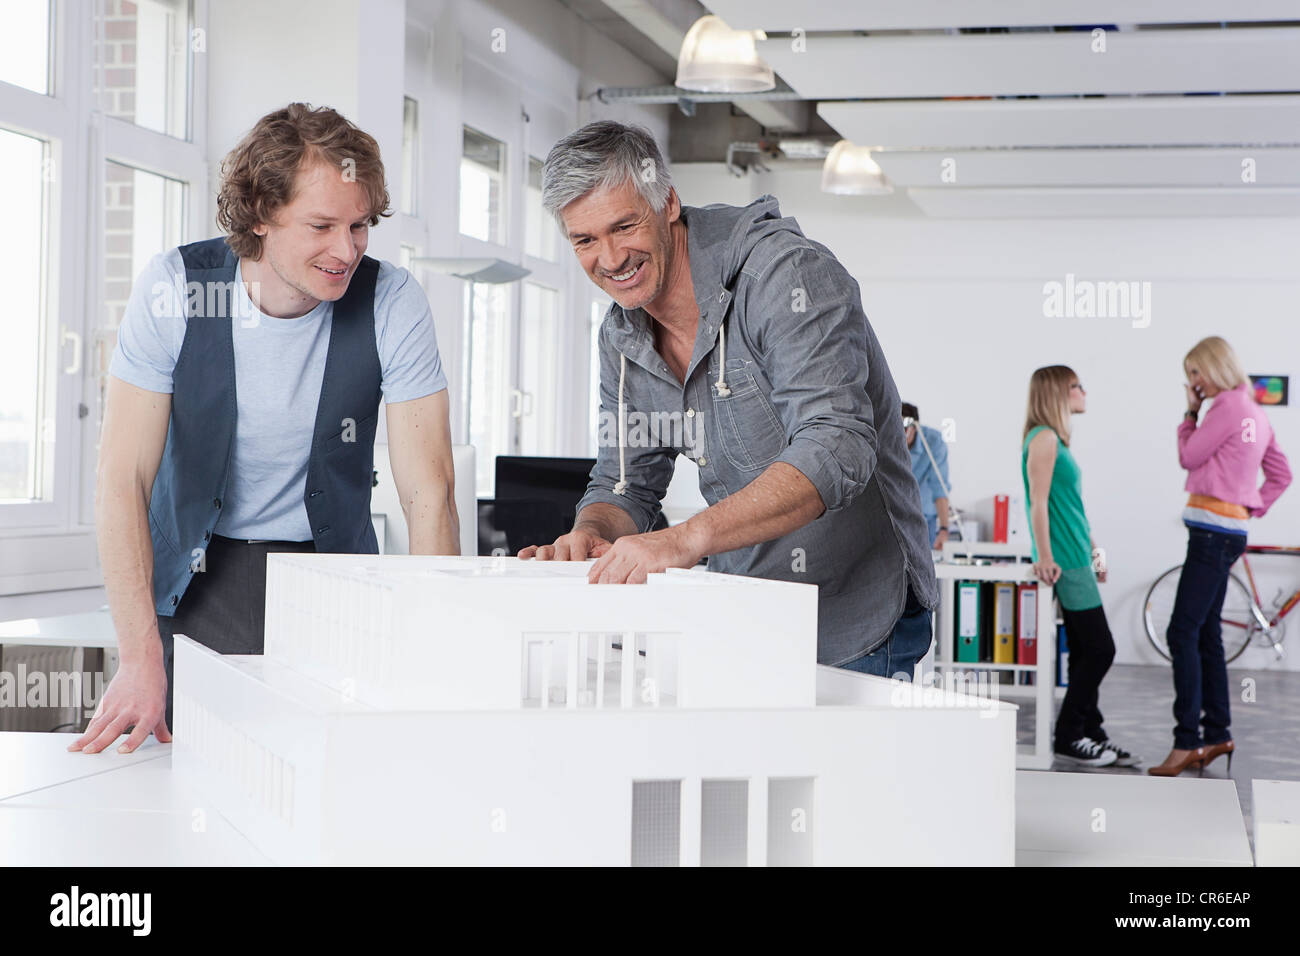 Germany, Bavaria, Munich, Men watching architectural model in office, colleagues talking in background - Stock Image